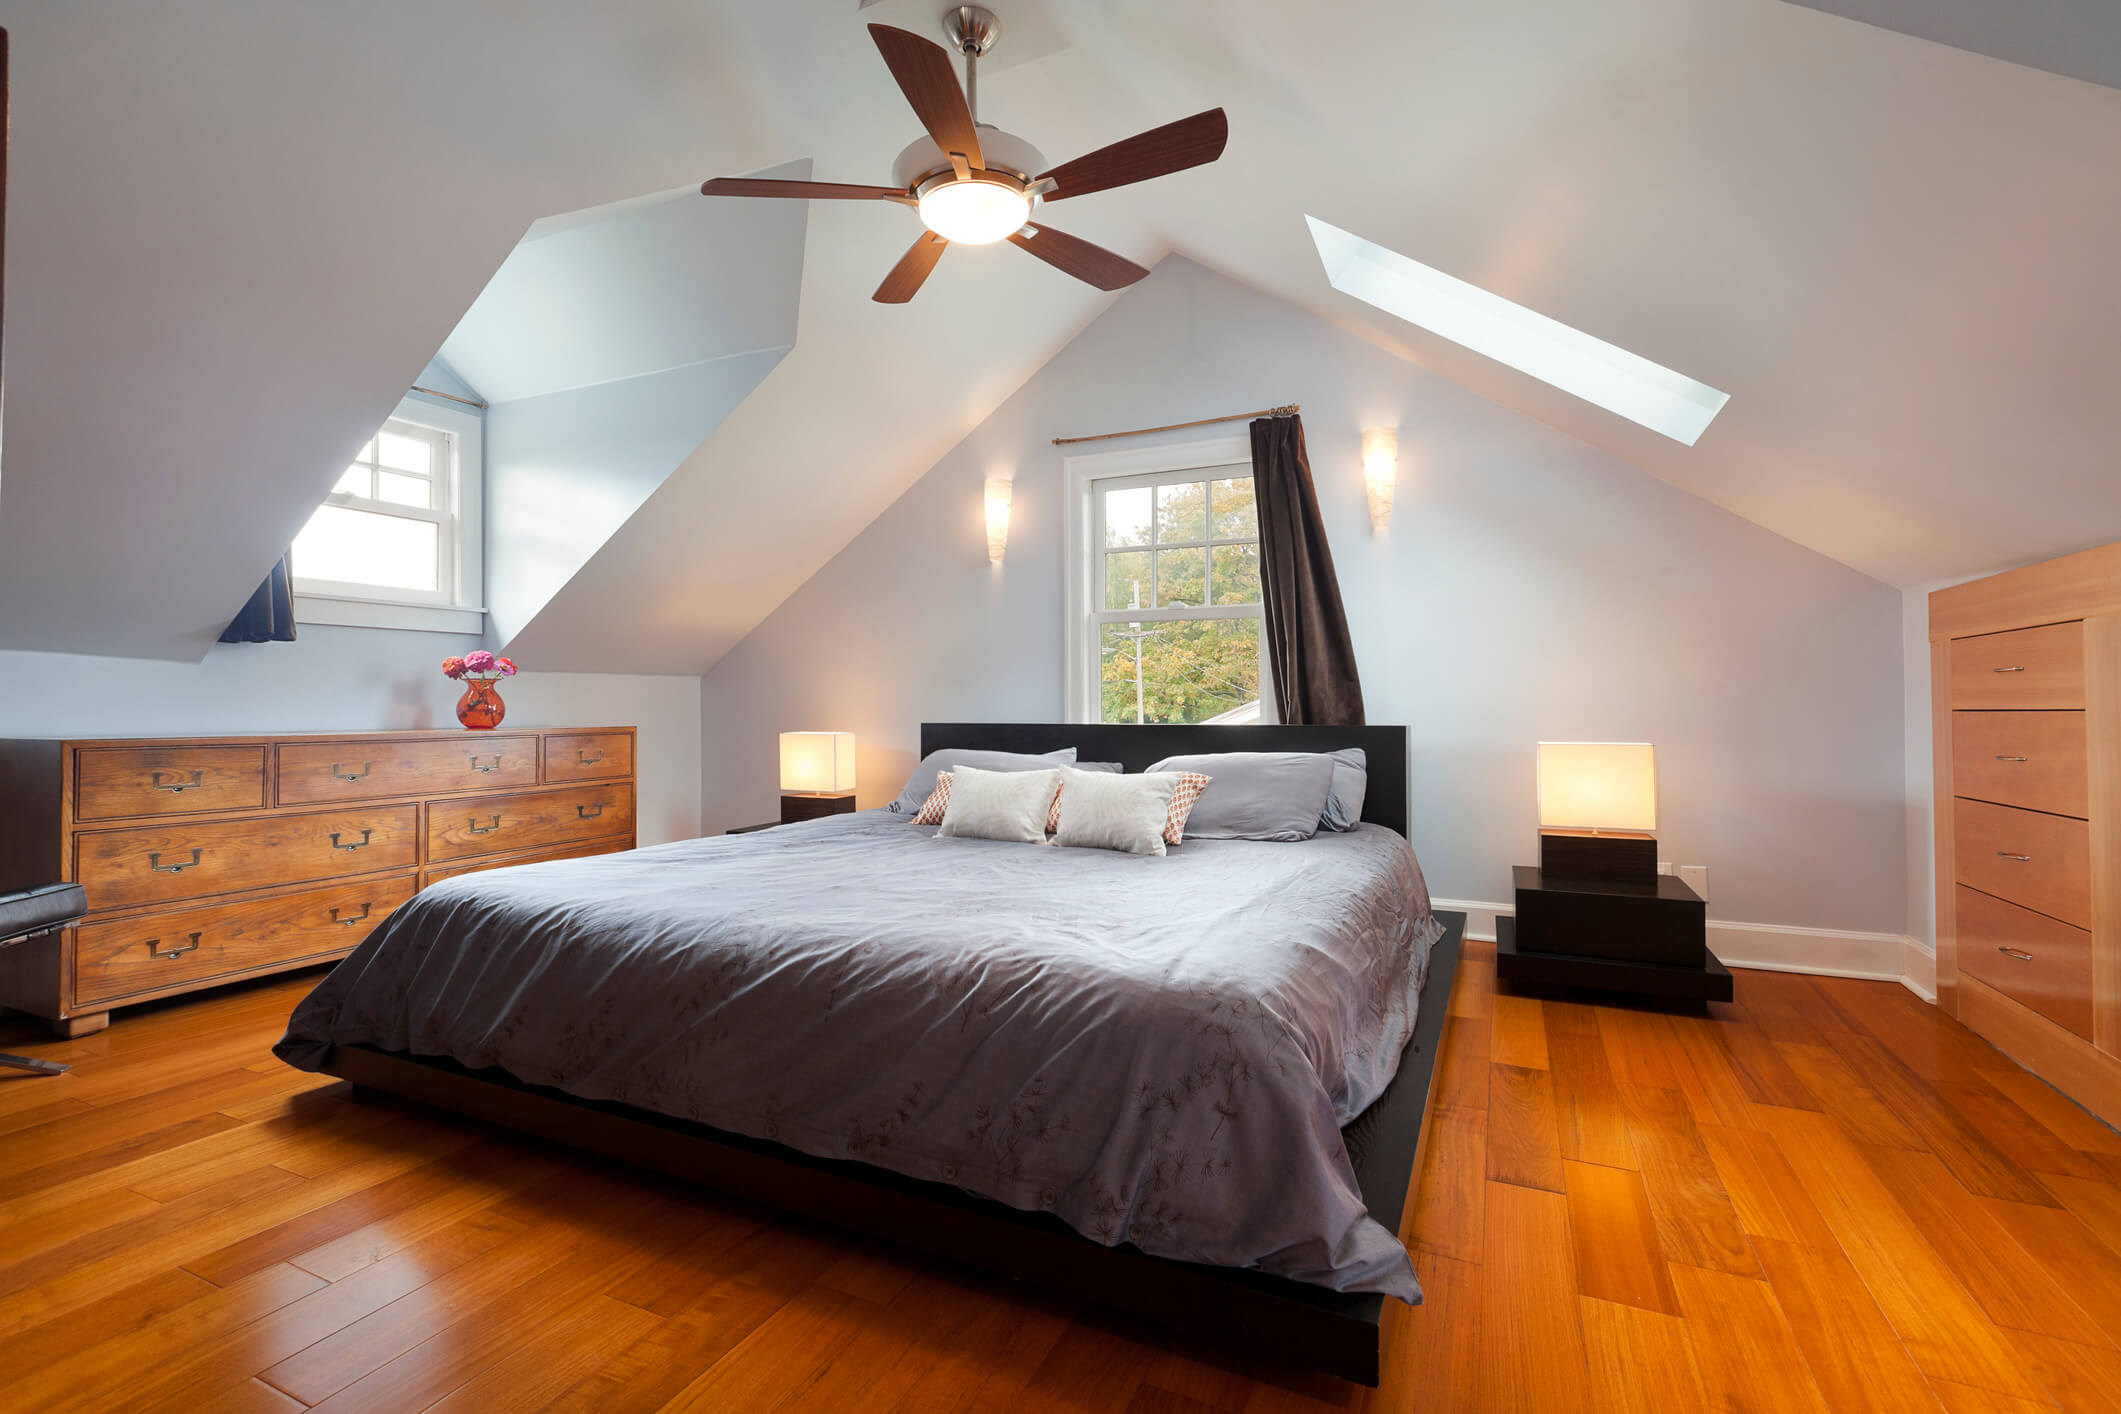 7 Ways to Keep Your Bedroom Comfortably Cool This Summer